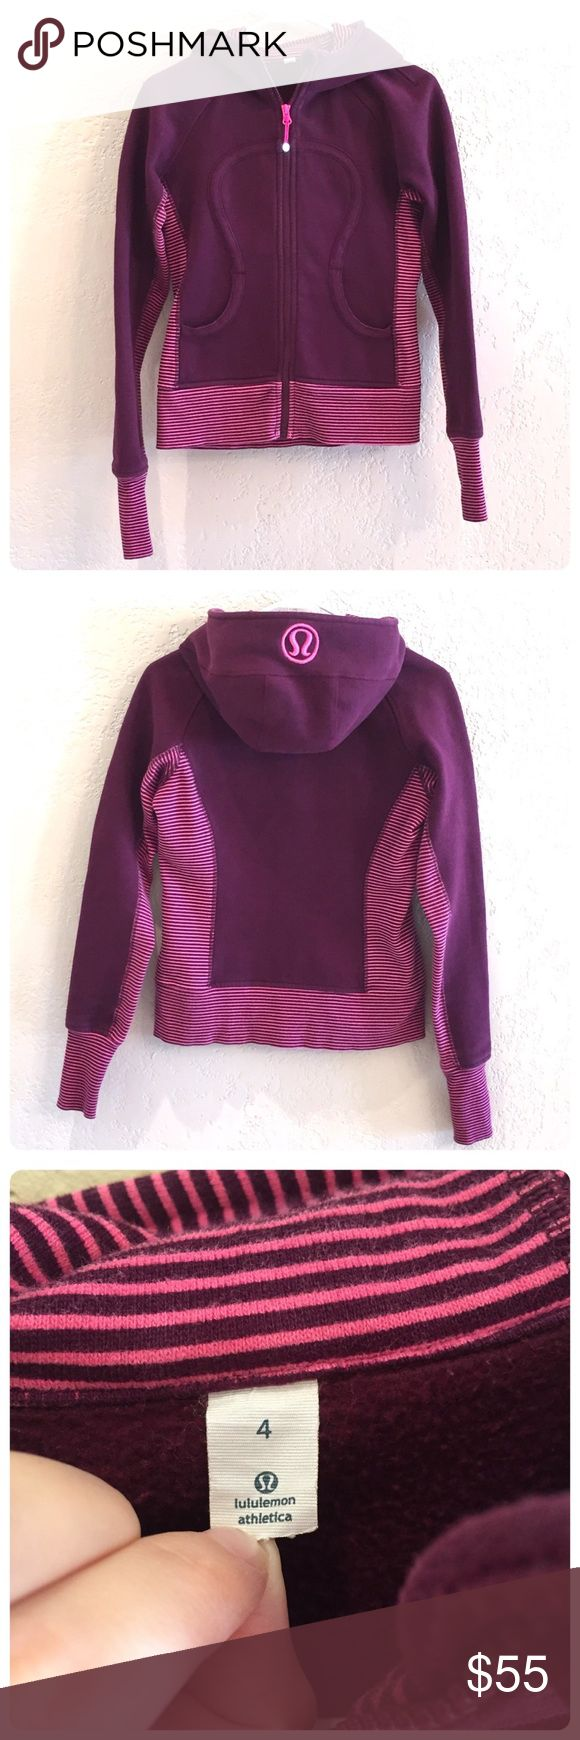 Lululemon Scuba Hoodie Lululemon Scuba Hoodie with thumb loops. Raspberry with pink and purple striped side panels. Thick and cozy, women's size 4. Slight fading from washing, gently used condition. lululemon athletica Tops Sweatshirts & Hoodies